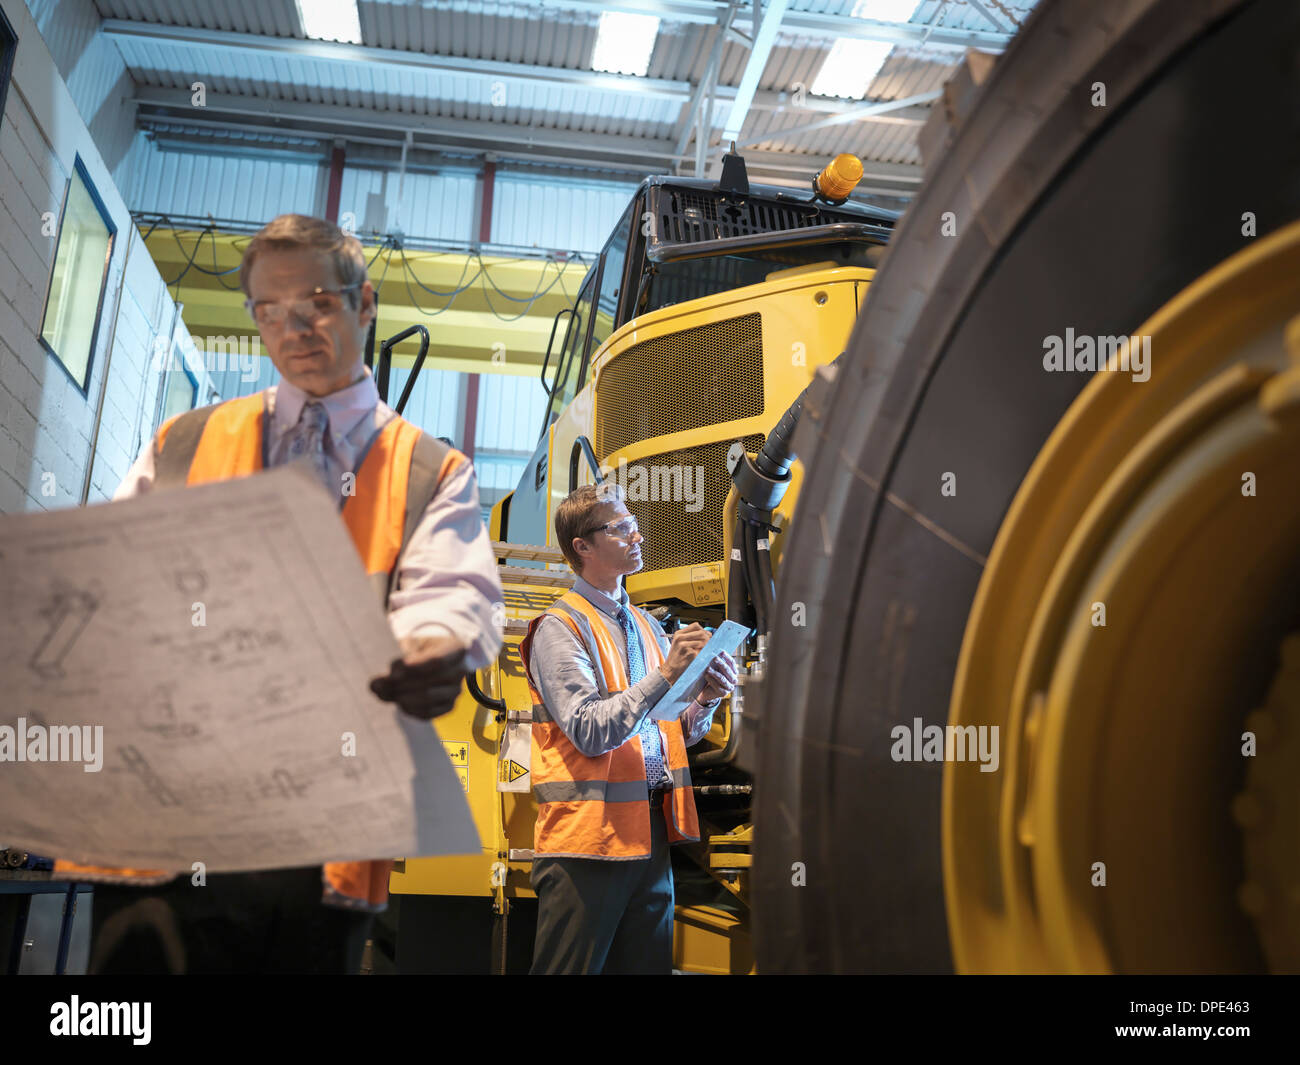 Engineers with engineering drawings inspecting heavy truck - Stock Image